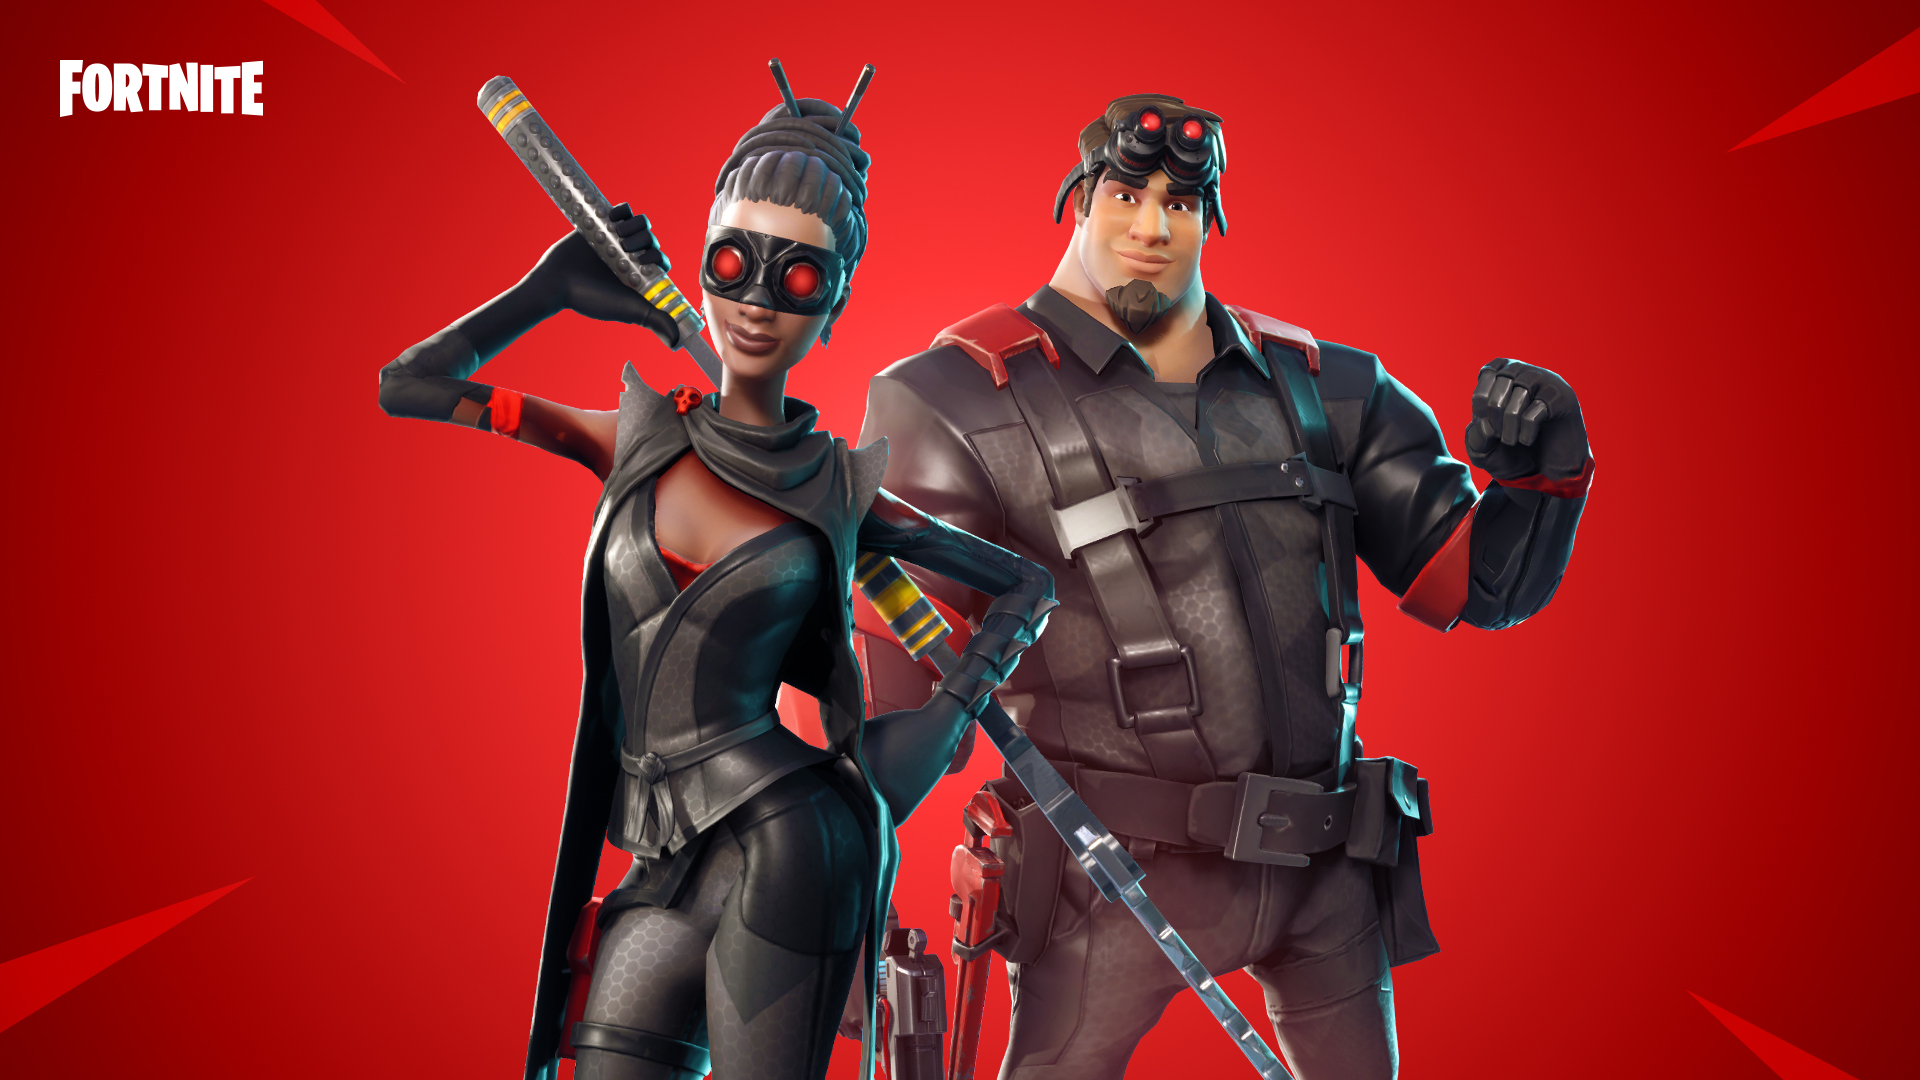 Failed connecting to matchmaking service fortnite